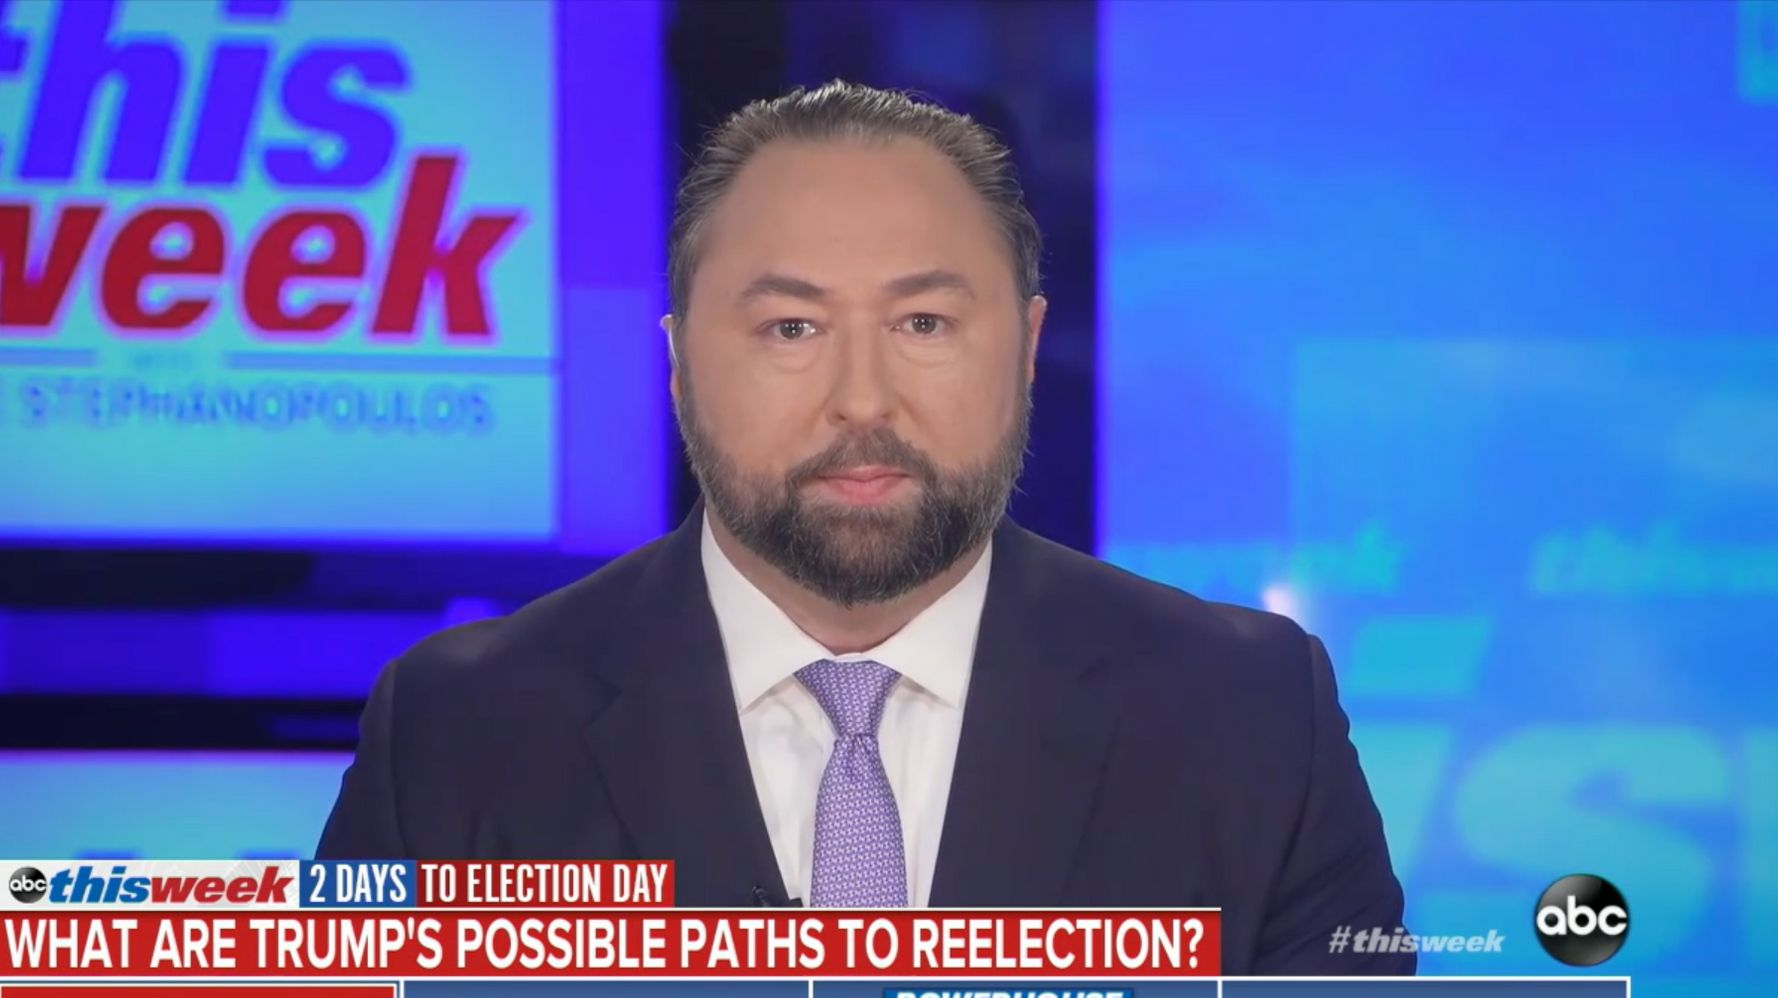 Trump Adviser Baselessly Claims Democrats Will Try To 'Steal' Election